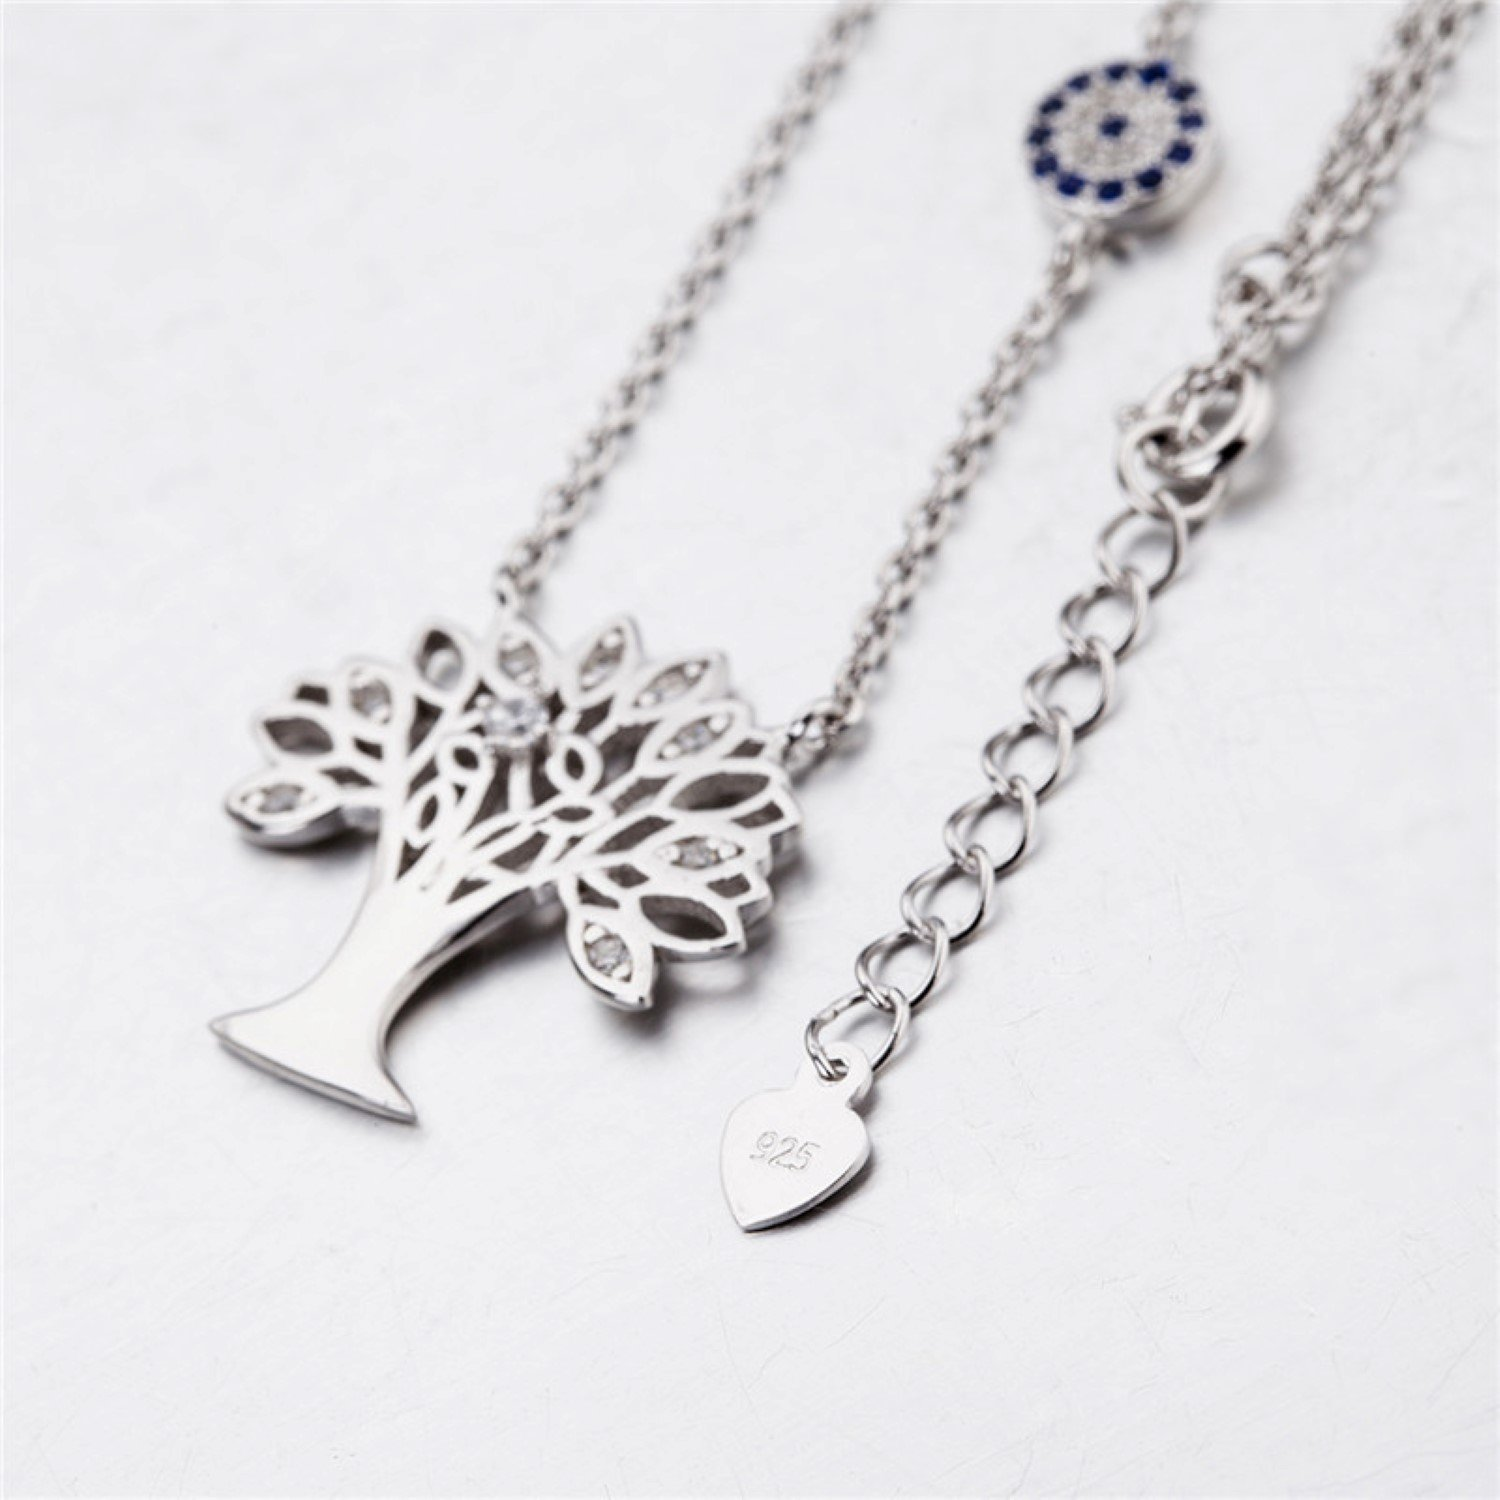 CS-DB Silver Necklaces Pendants Tree of Life Cubic Zirconia Top Stylish